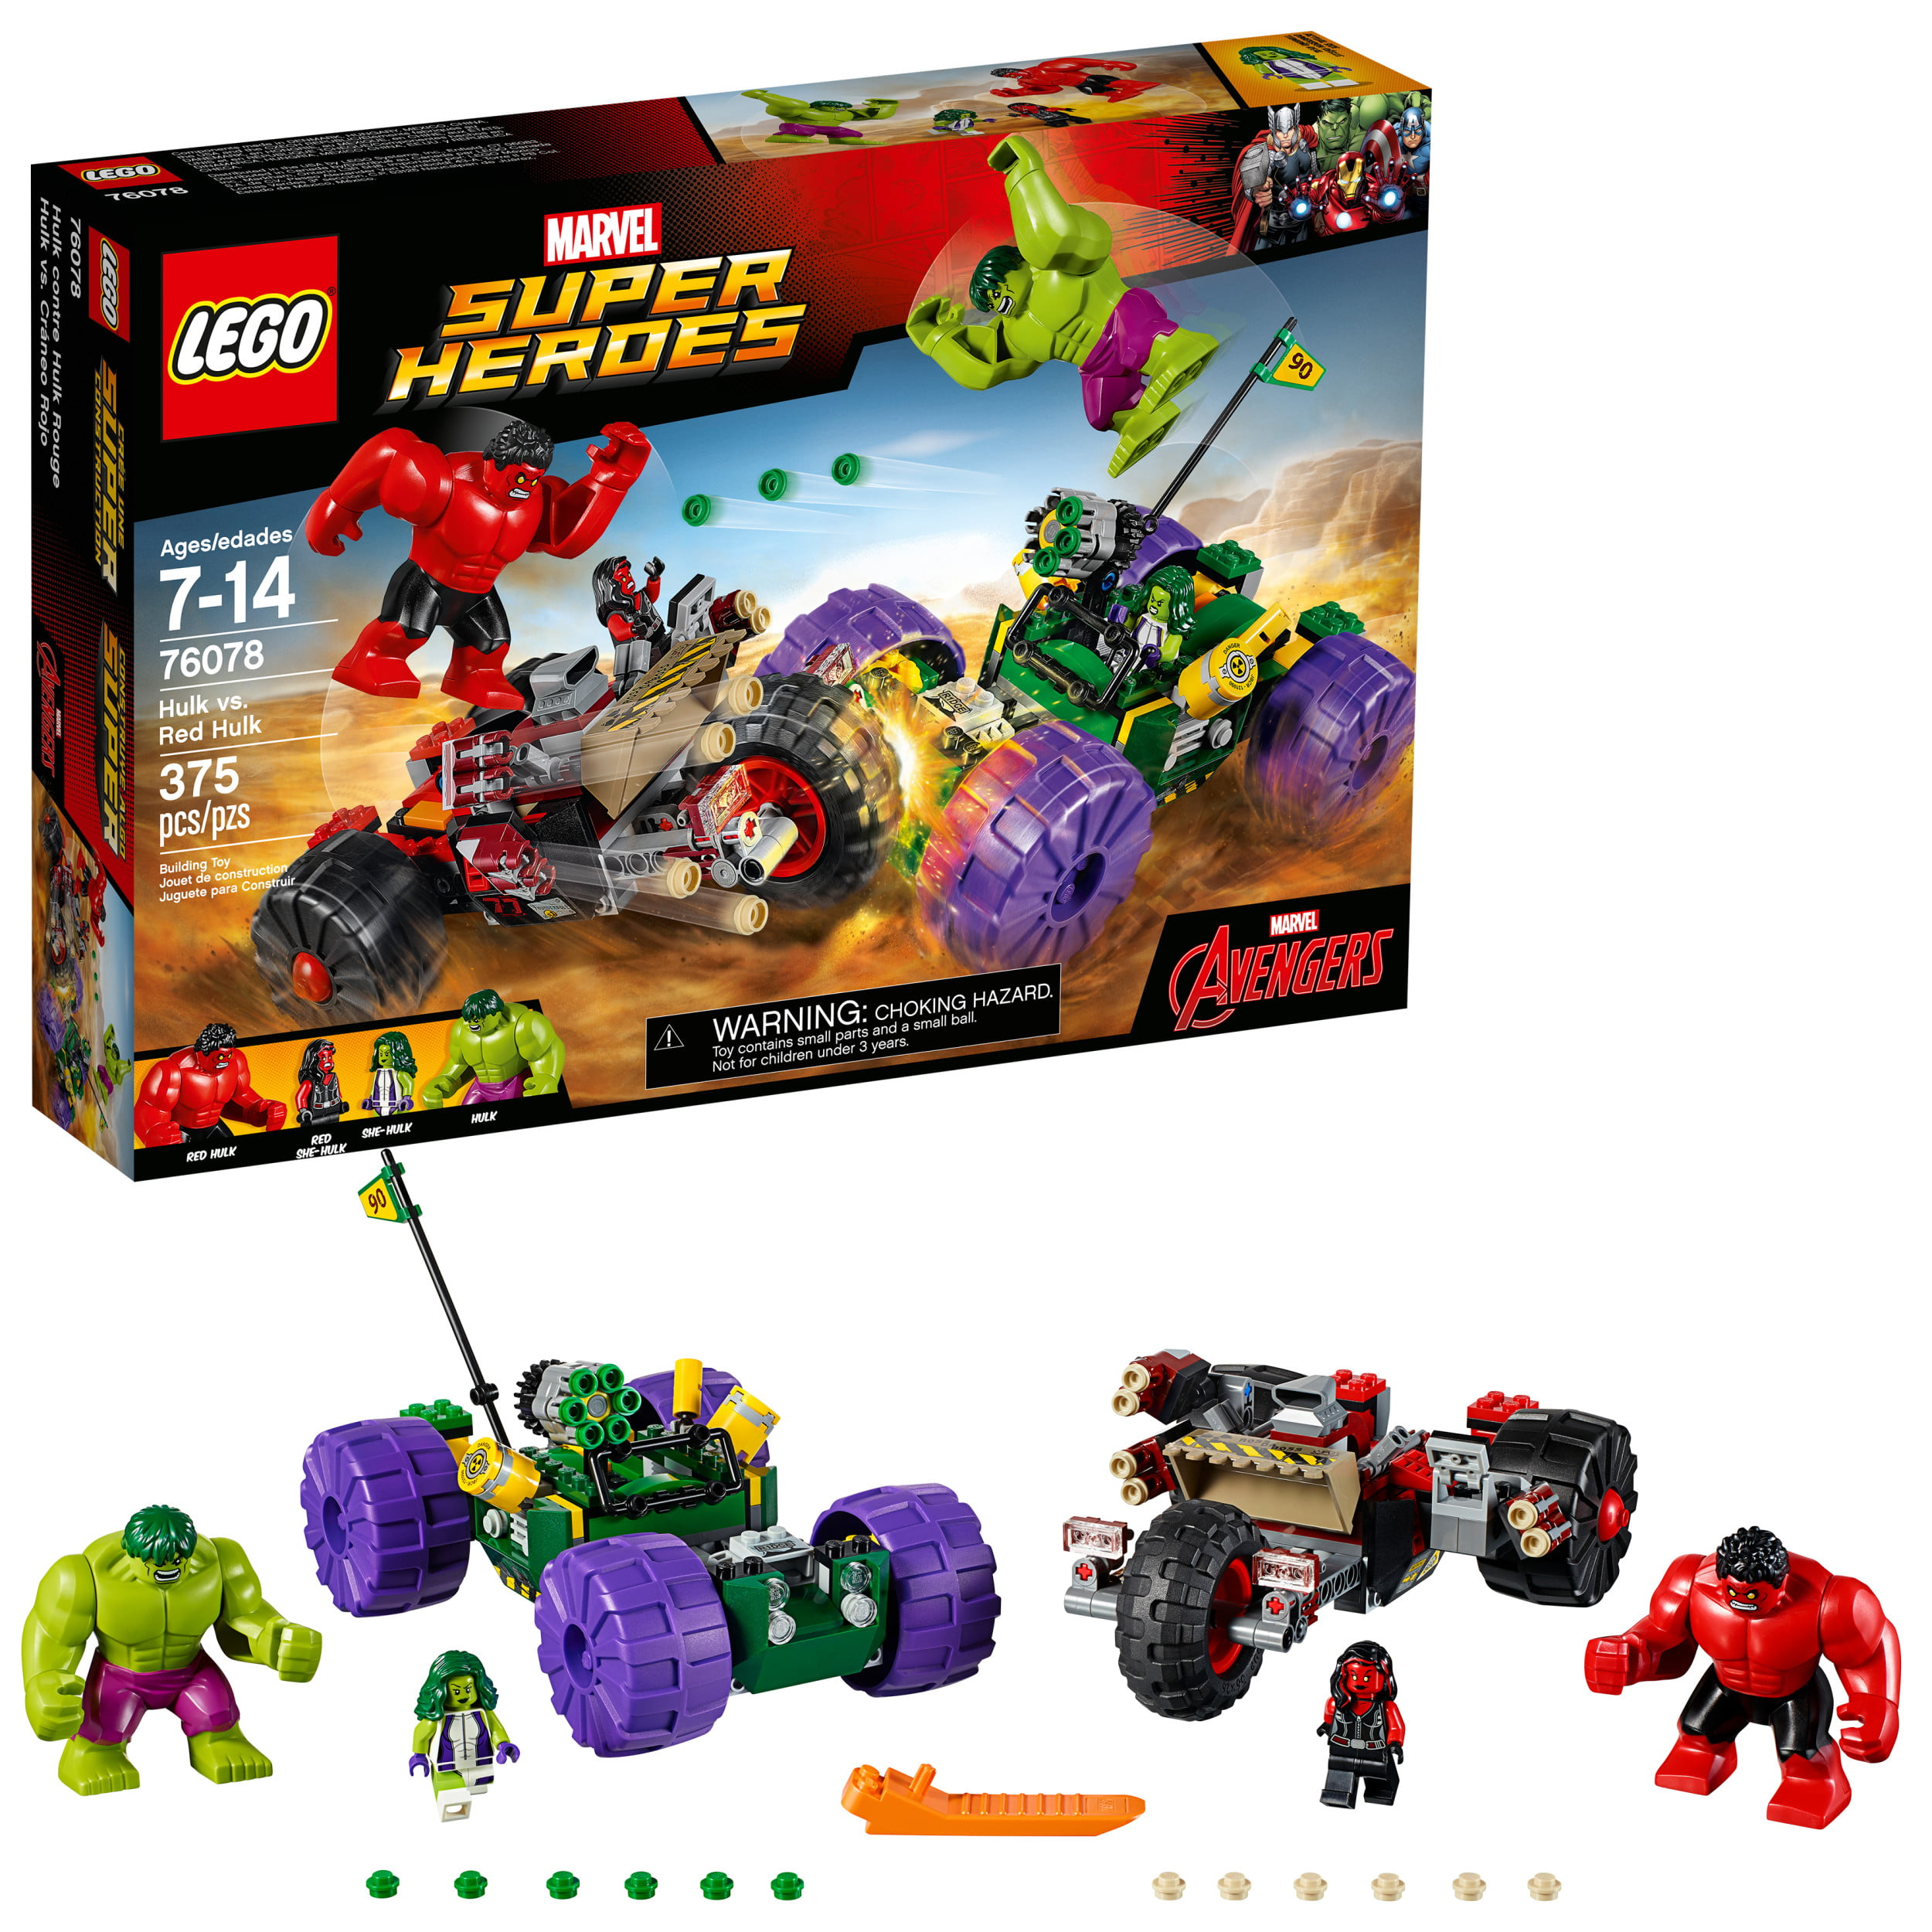 LEGO Super Heroes Hulk vs. Red Hulk 76078 (375 Pieces)